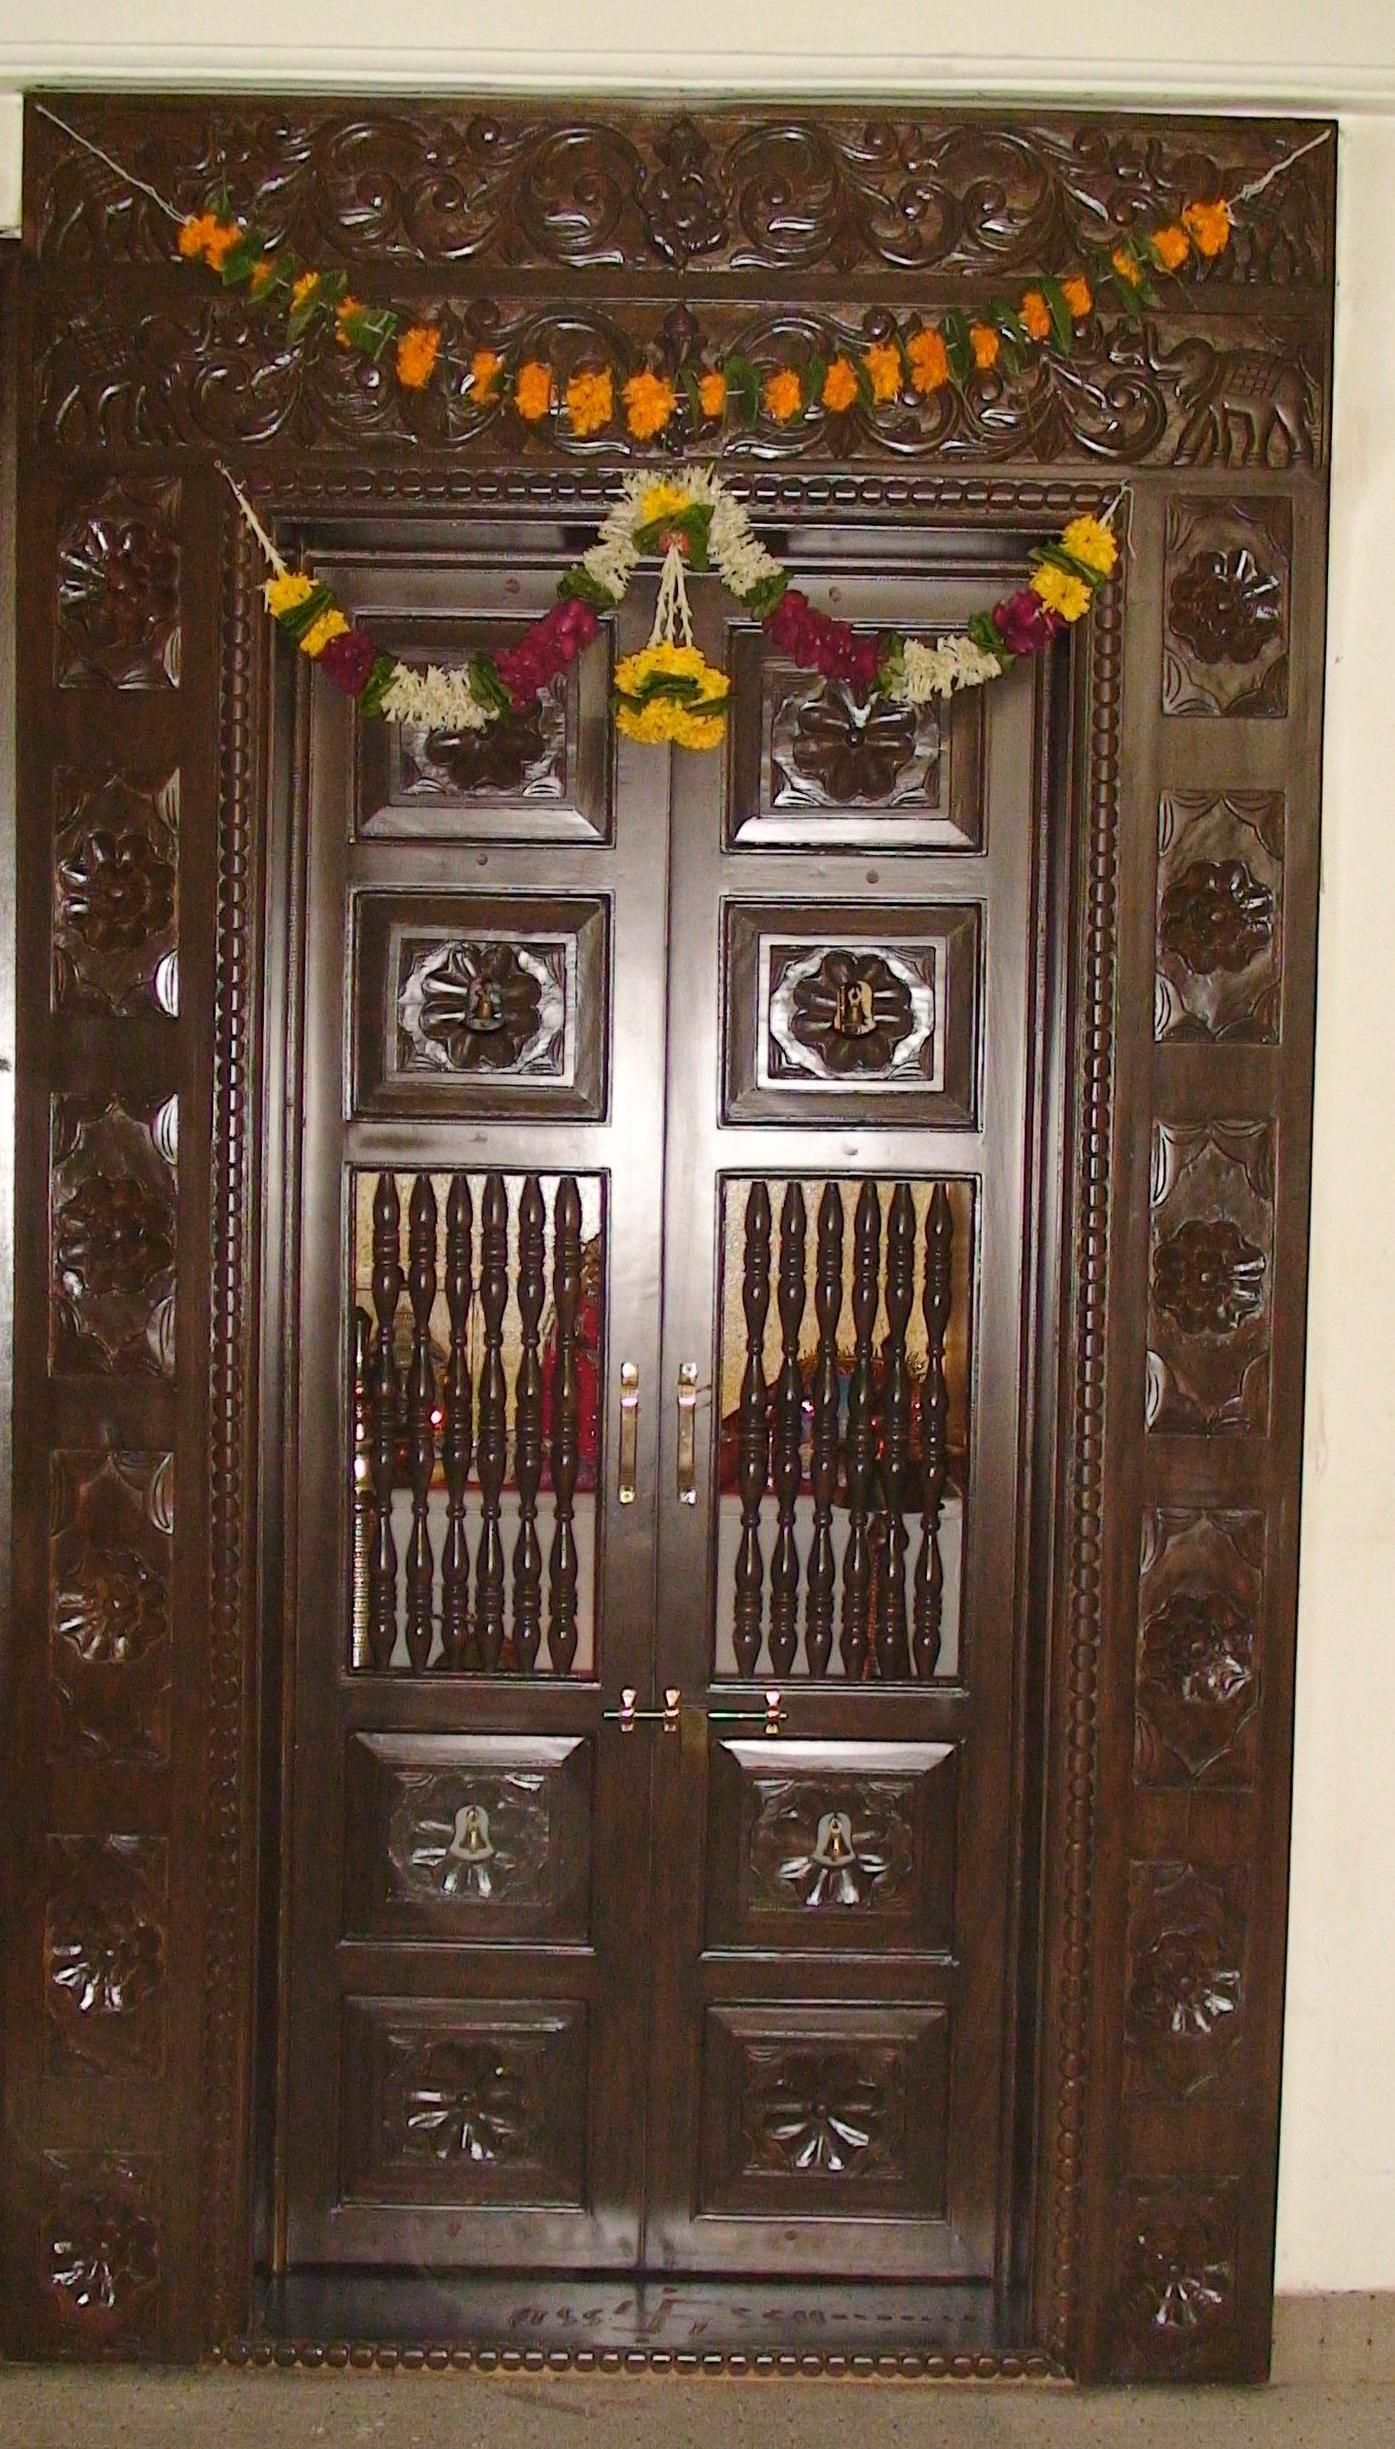 9 Traditional Pooja Room Door Designs In 2020: Pooja Door Designs Teak Wood